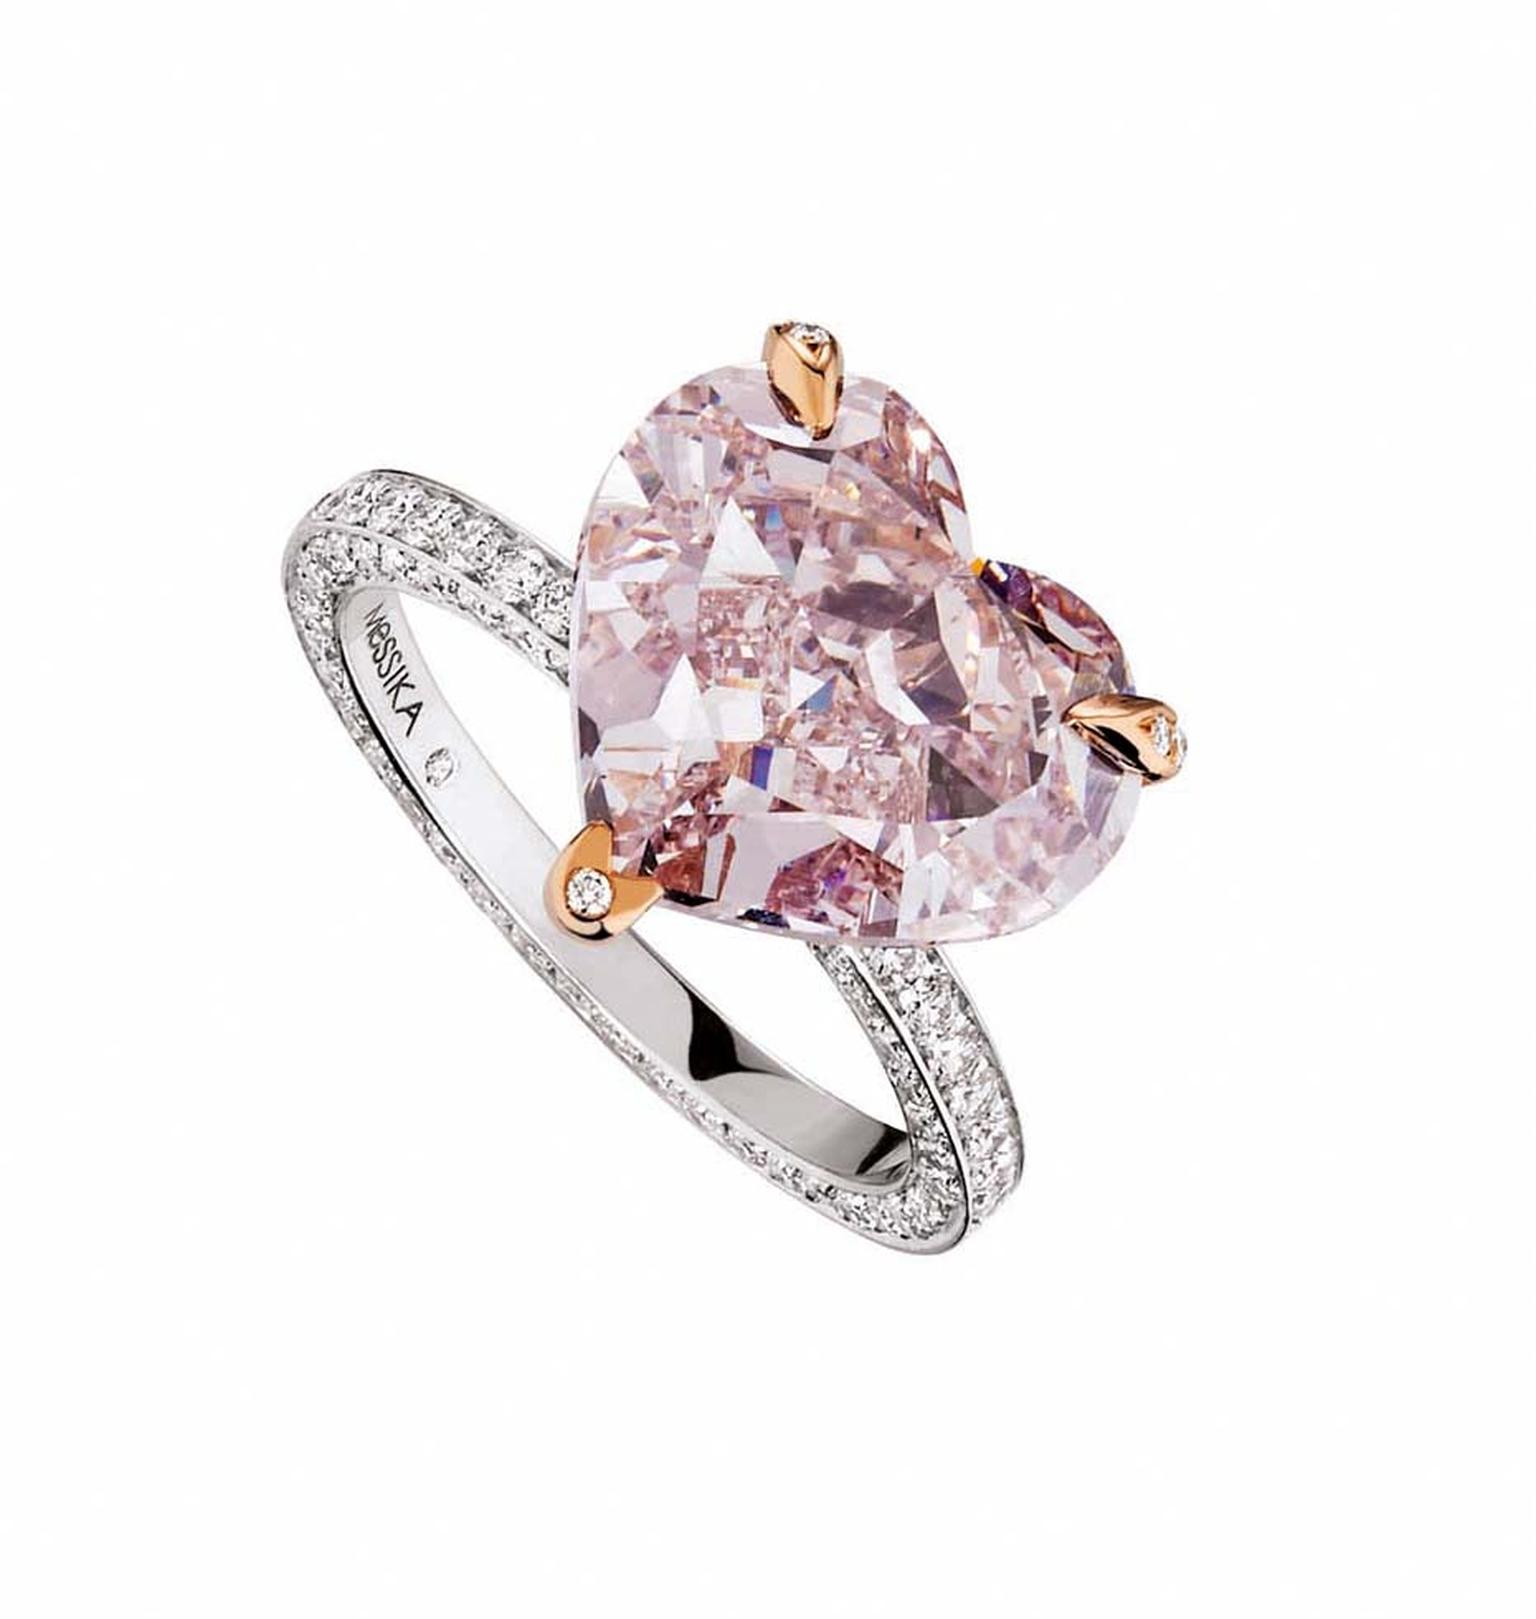 Messika heart cut pink diamond engagement ring with rose gold prongs and a pavé diamond band.